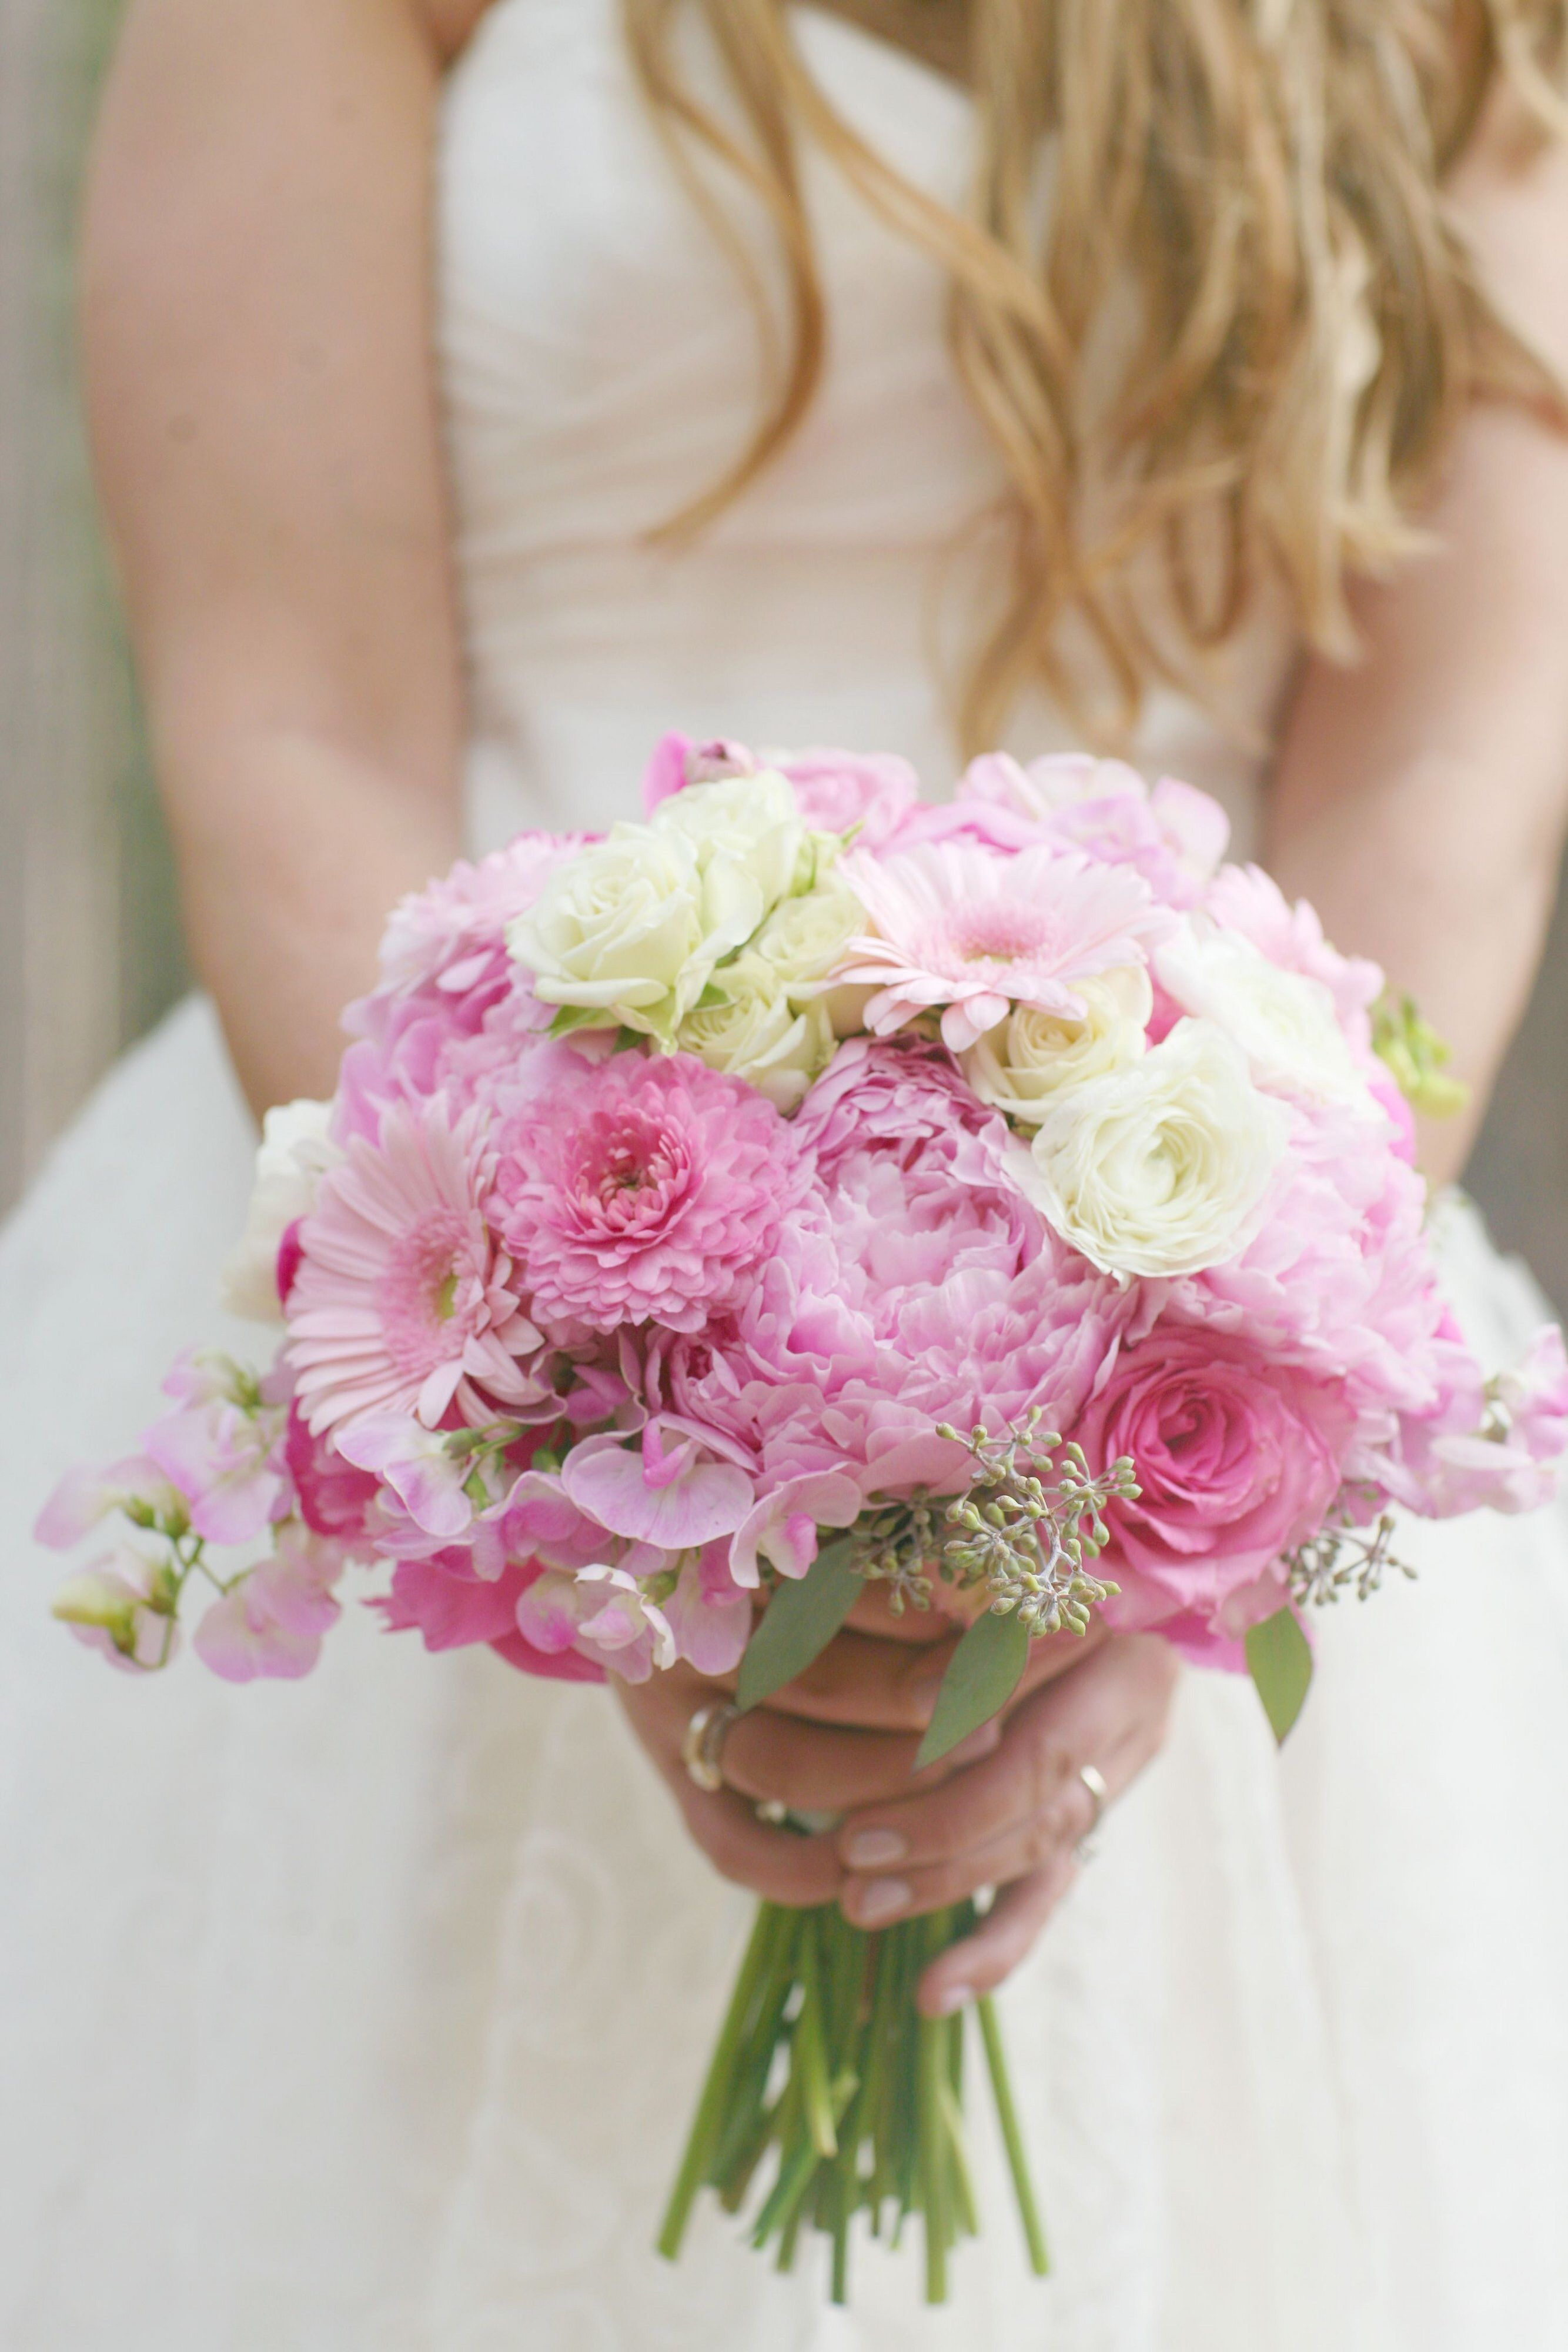 Pink bridal bouquet - wedding flowers for spring or summer wedding ...